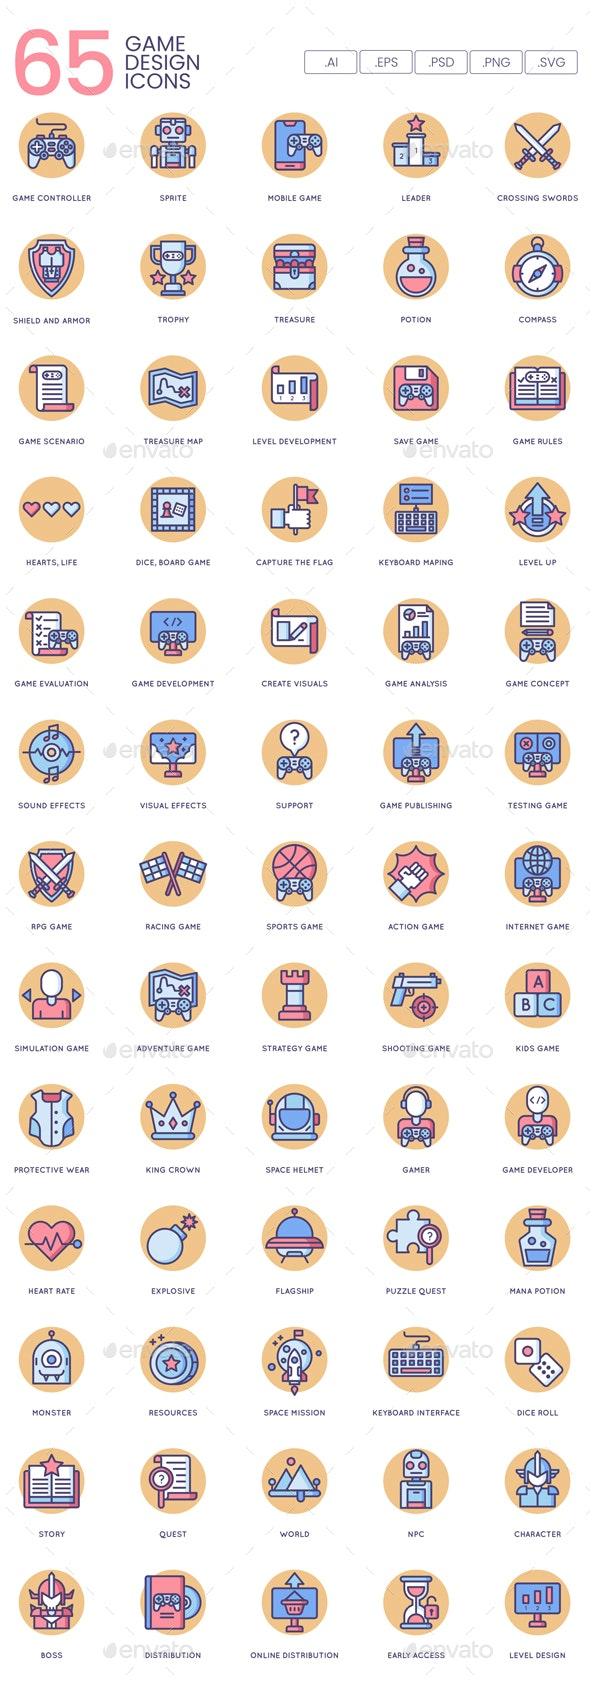 Game Design Icons - Butterscotch - Software Icons